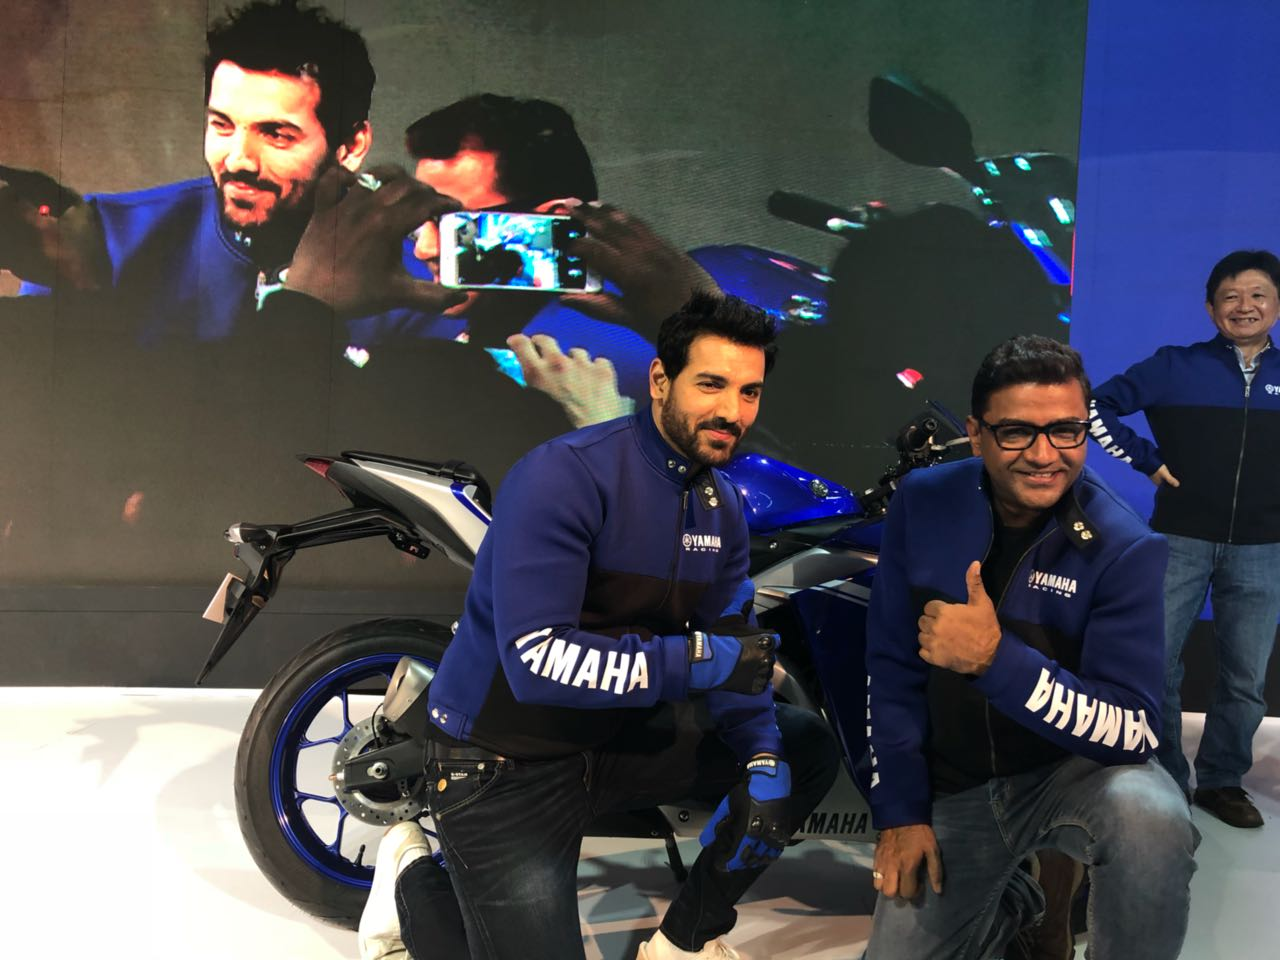 AutoExpo2018: Yamaha Motor launches YZF-R3 at Rs 348000 (ex-showroom Delhi)